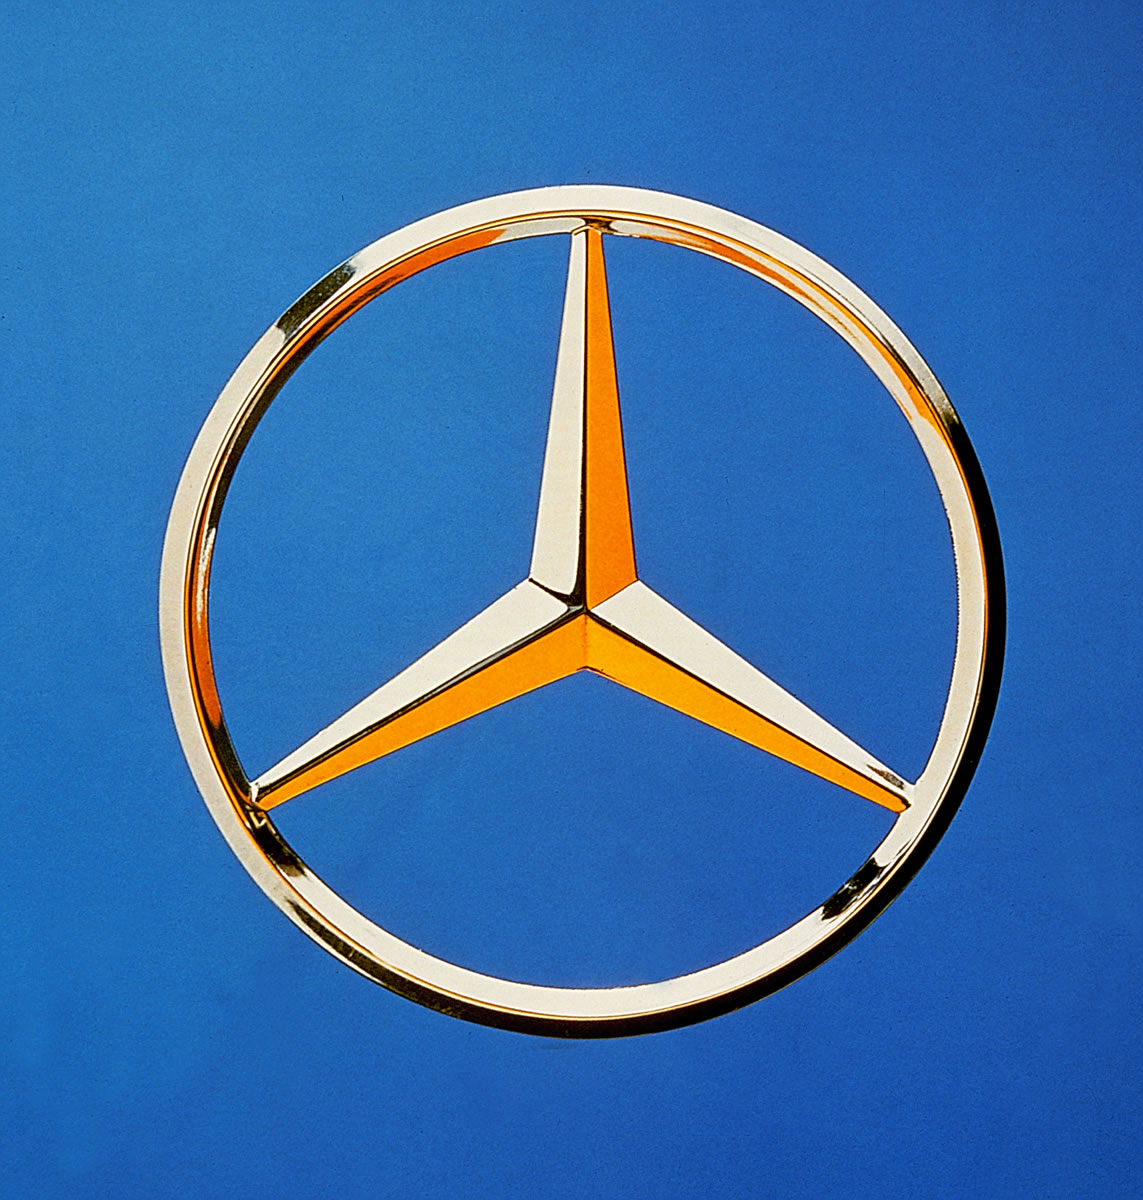 Mercedes Benz Symbol >> The True Story Behind The Mercedes Benz Three Pointed Star